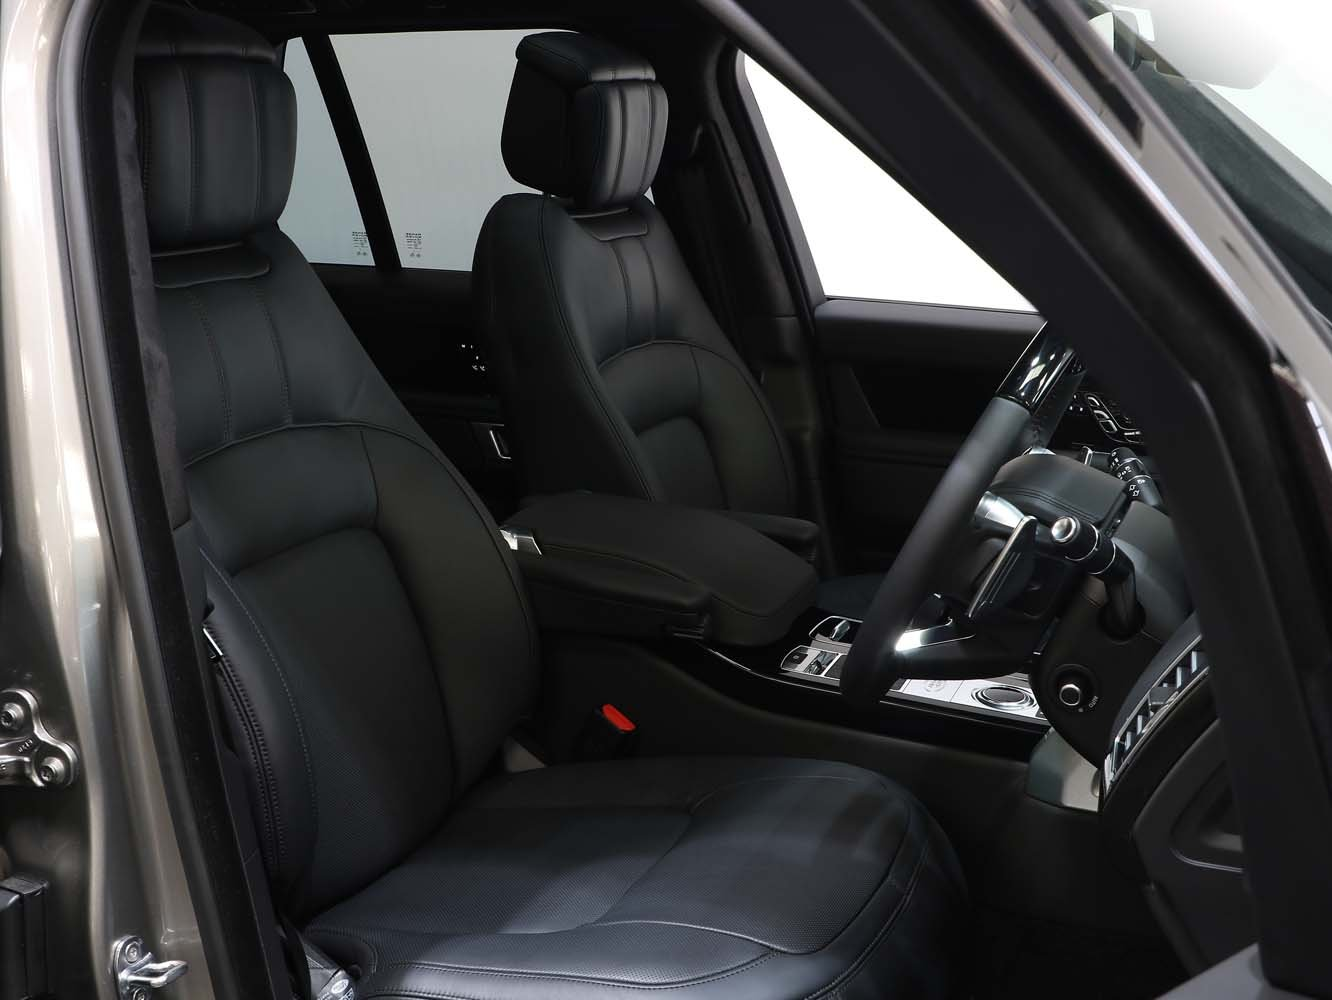 2019 19 19 RANGE ROVER AUTOBIOGRAPHY AUTO For Sale (picture 5 of 6)